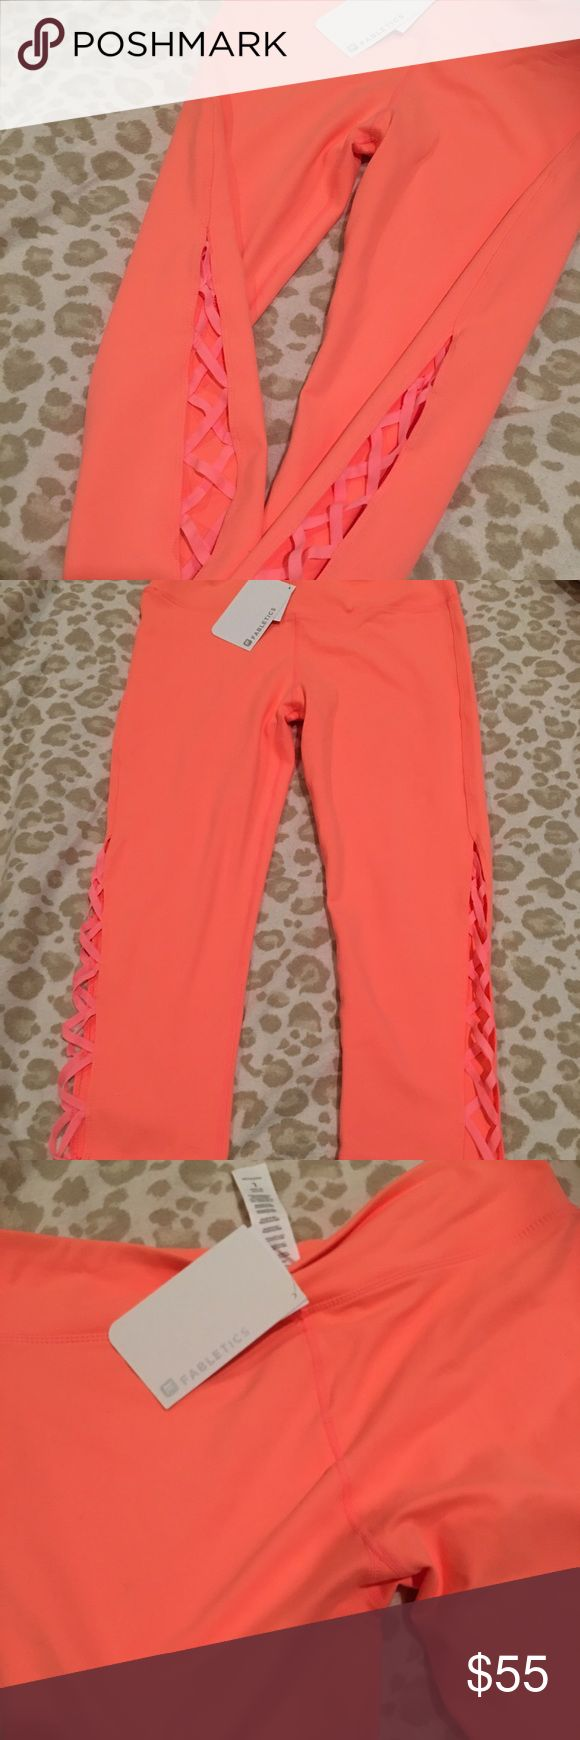 Fabletics Coral Capri Leggings These are so incredibly cute w the side leg detail!! They just don't fit me right. I only tried on twice. New w tags! Fabletics Pants Capris